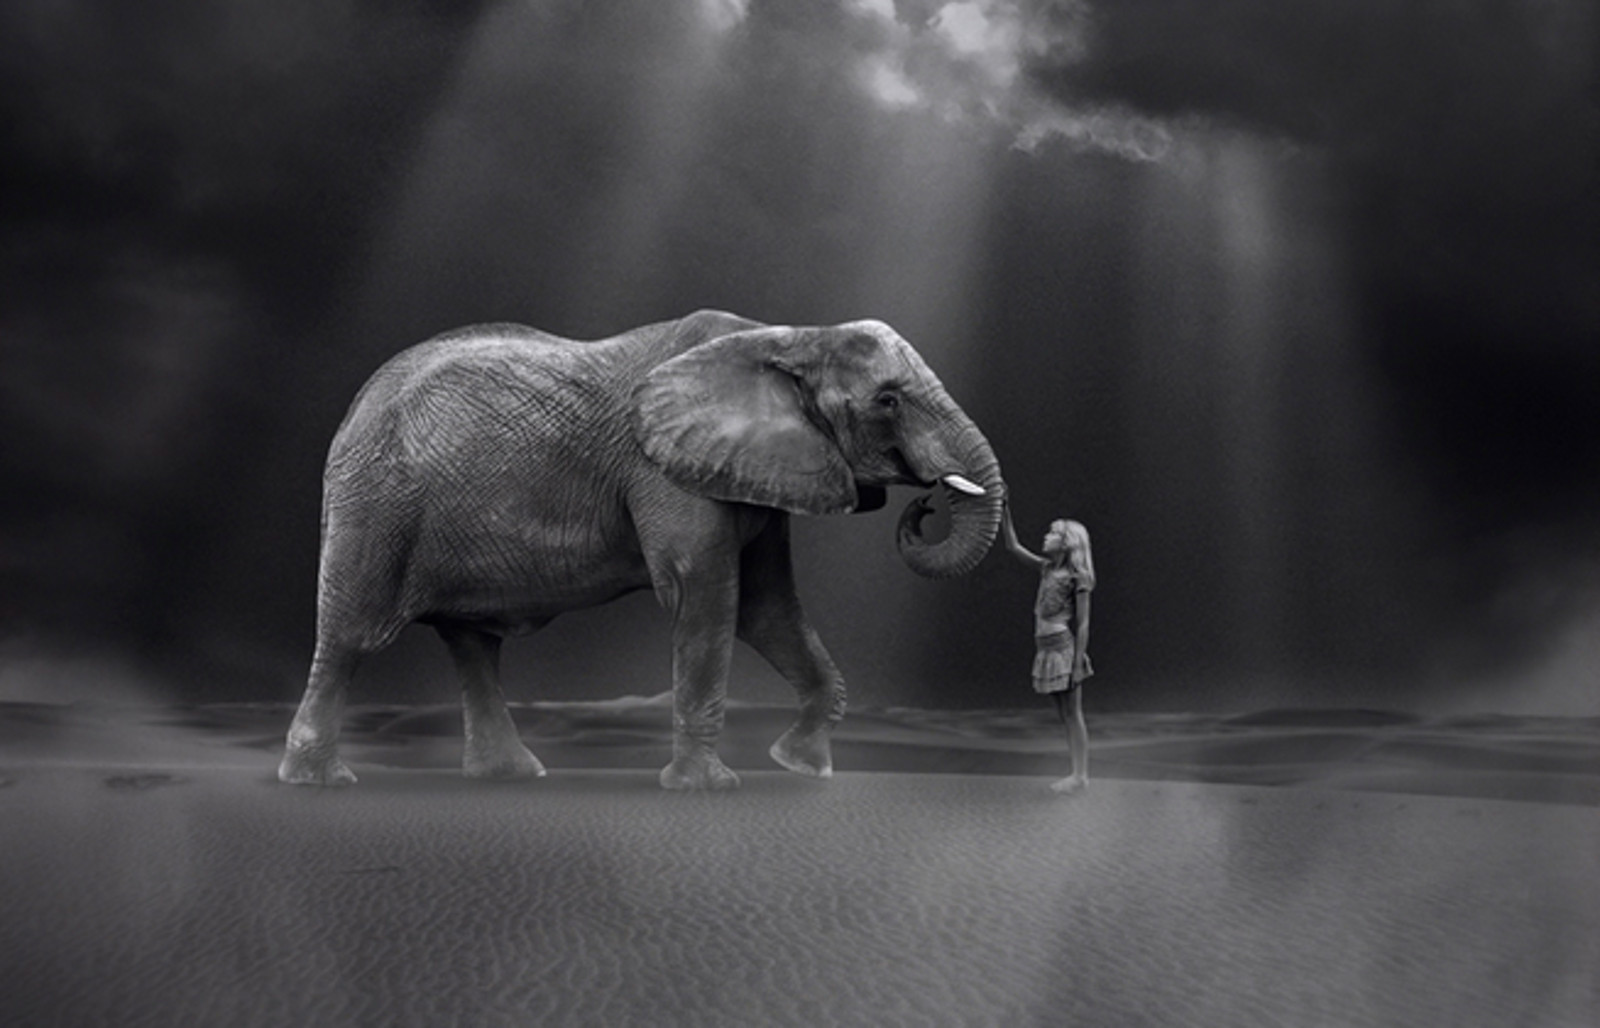 True Art Does Not Sacrifice Life: One Organizations Mission to Save Elephants